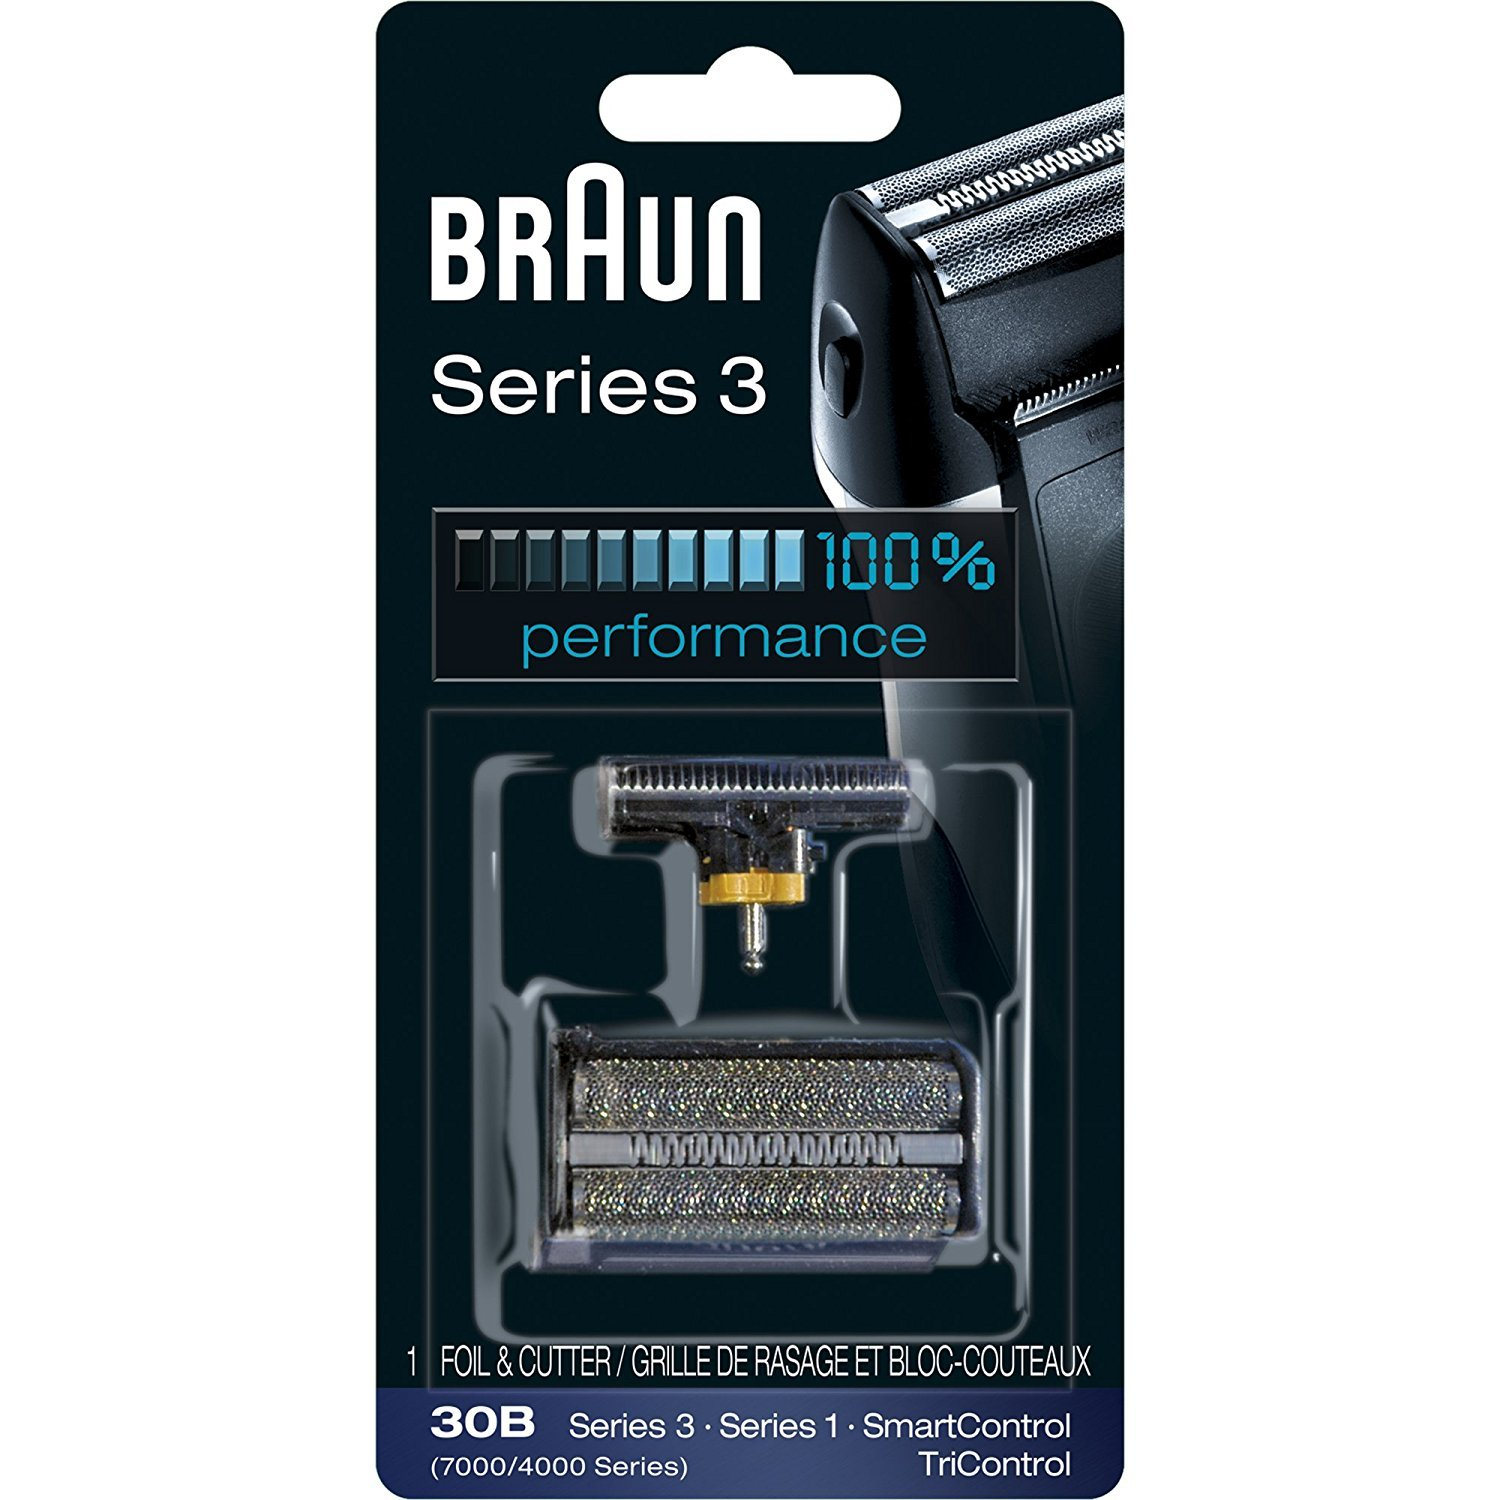 Braun Series 3 30B Foil & Cutter Replacement Head, Compatible with 7000/4000 range of shavers; and Previous Generation Series 3